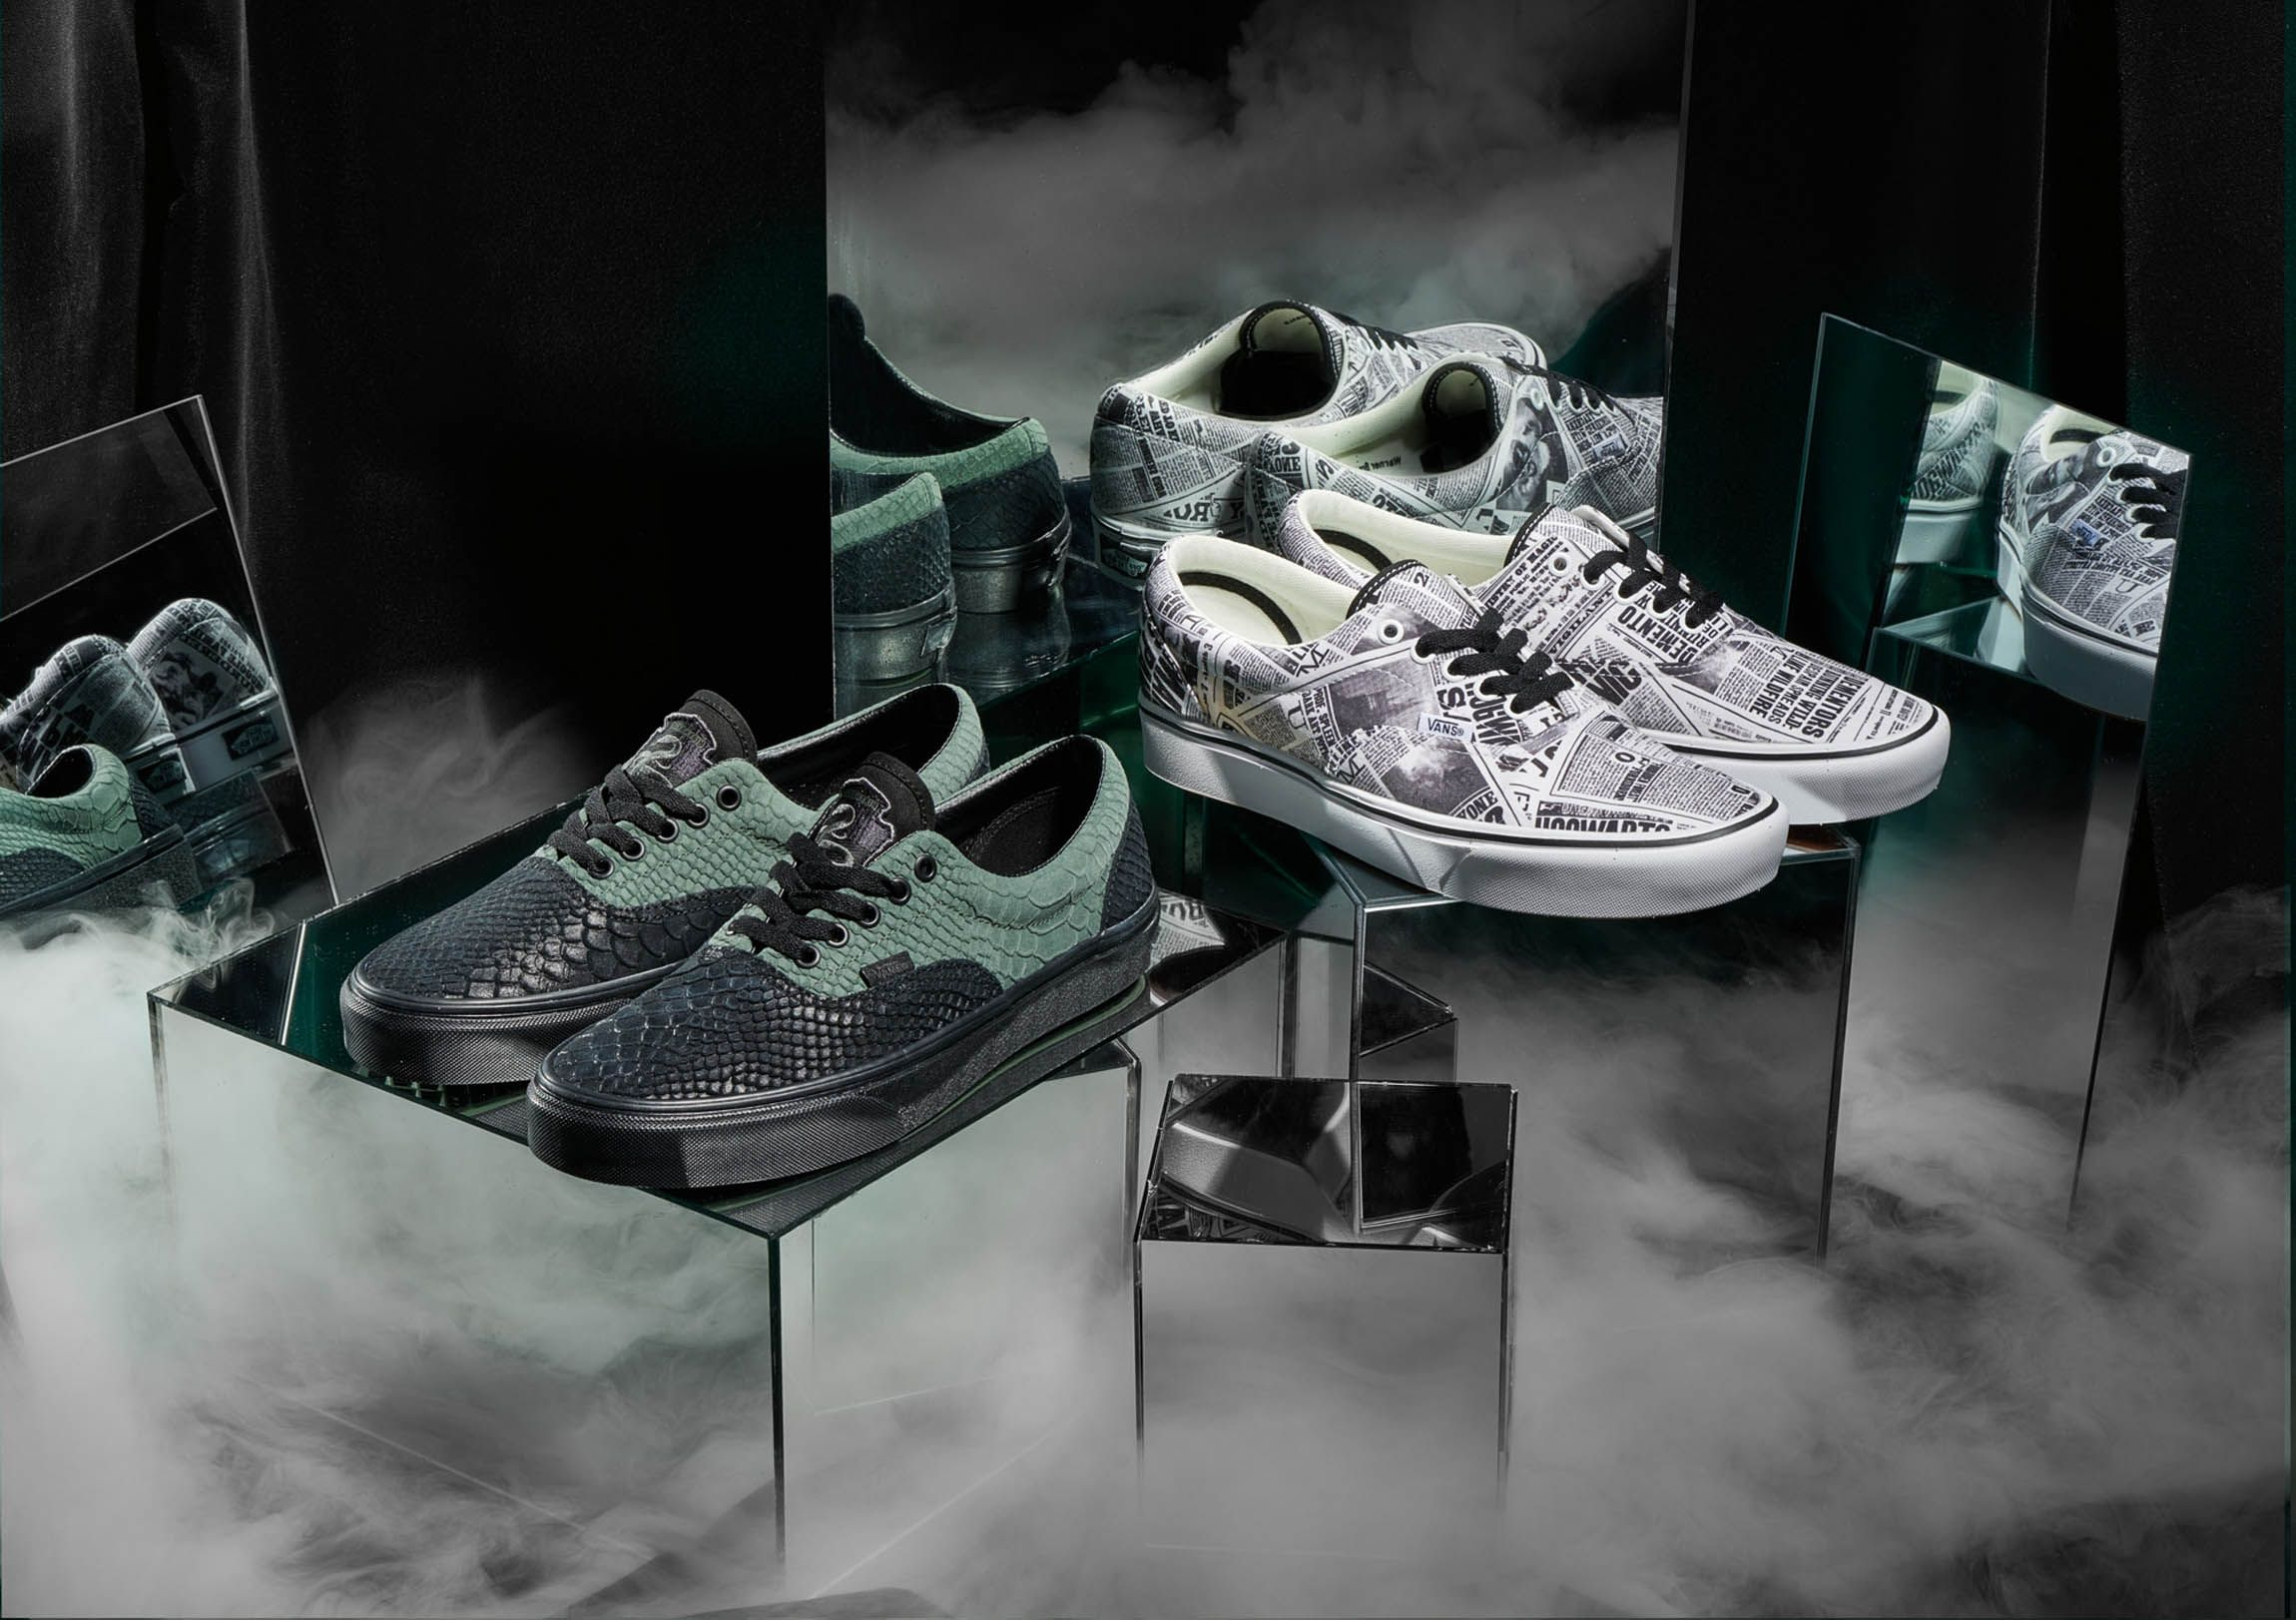 6ef149a9950 Vans x Harry Potter Collaboration 2019 Full Lookbook - Best Sneakers from  Vans Harry Potter Line